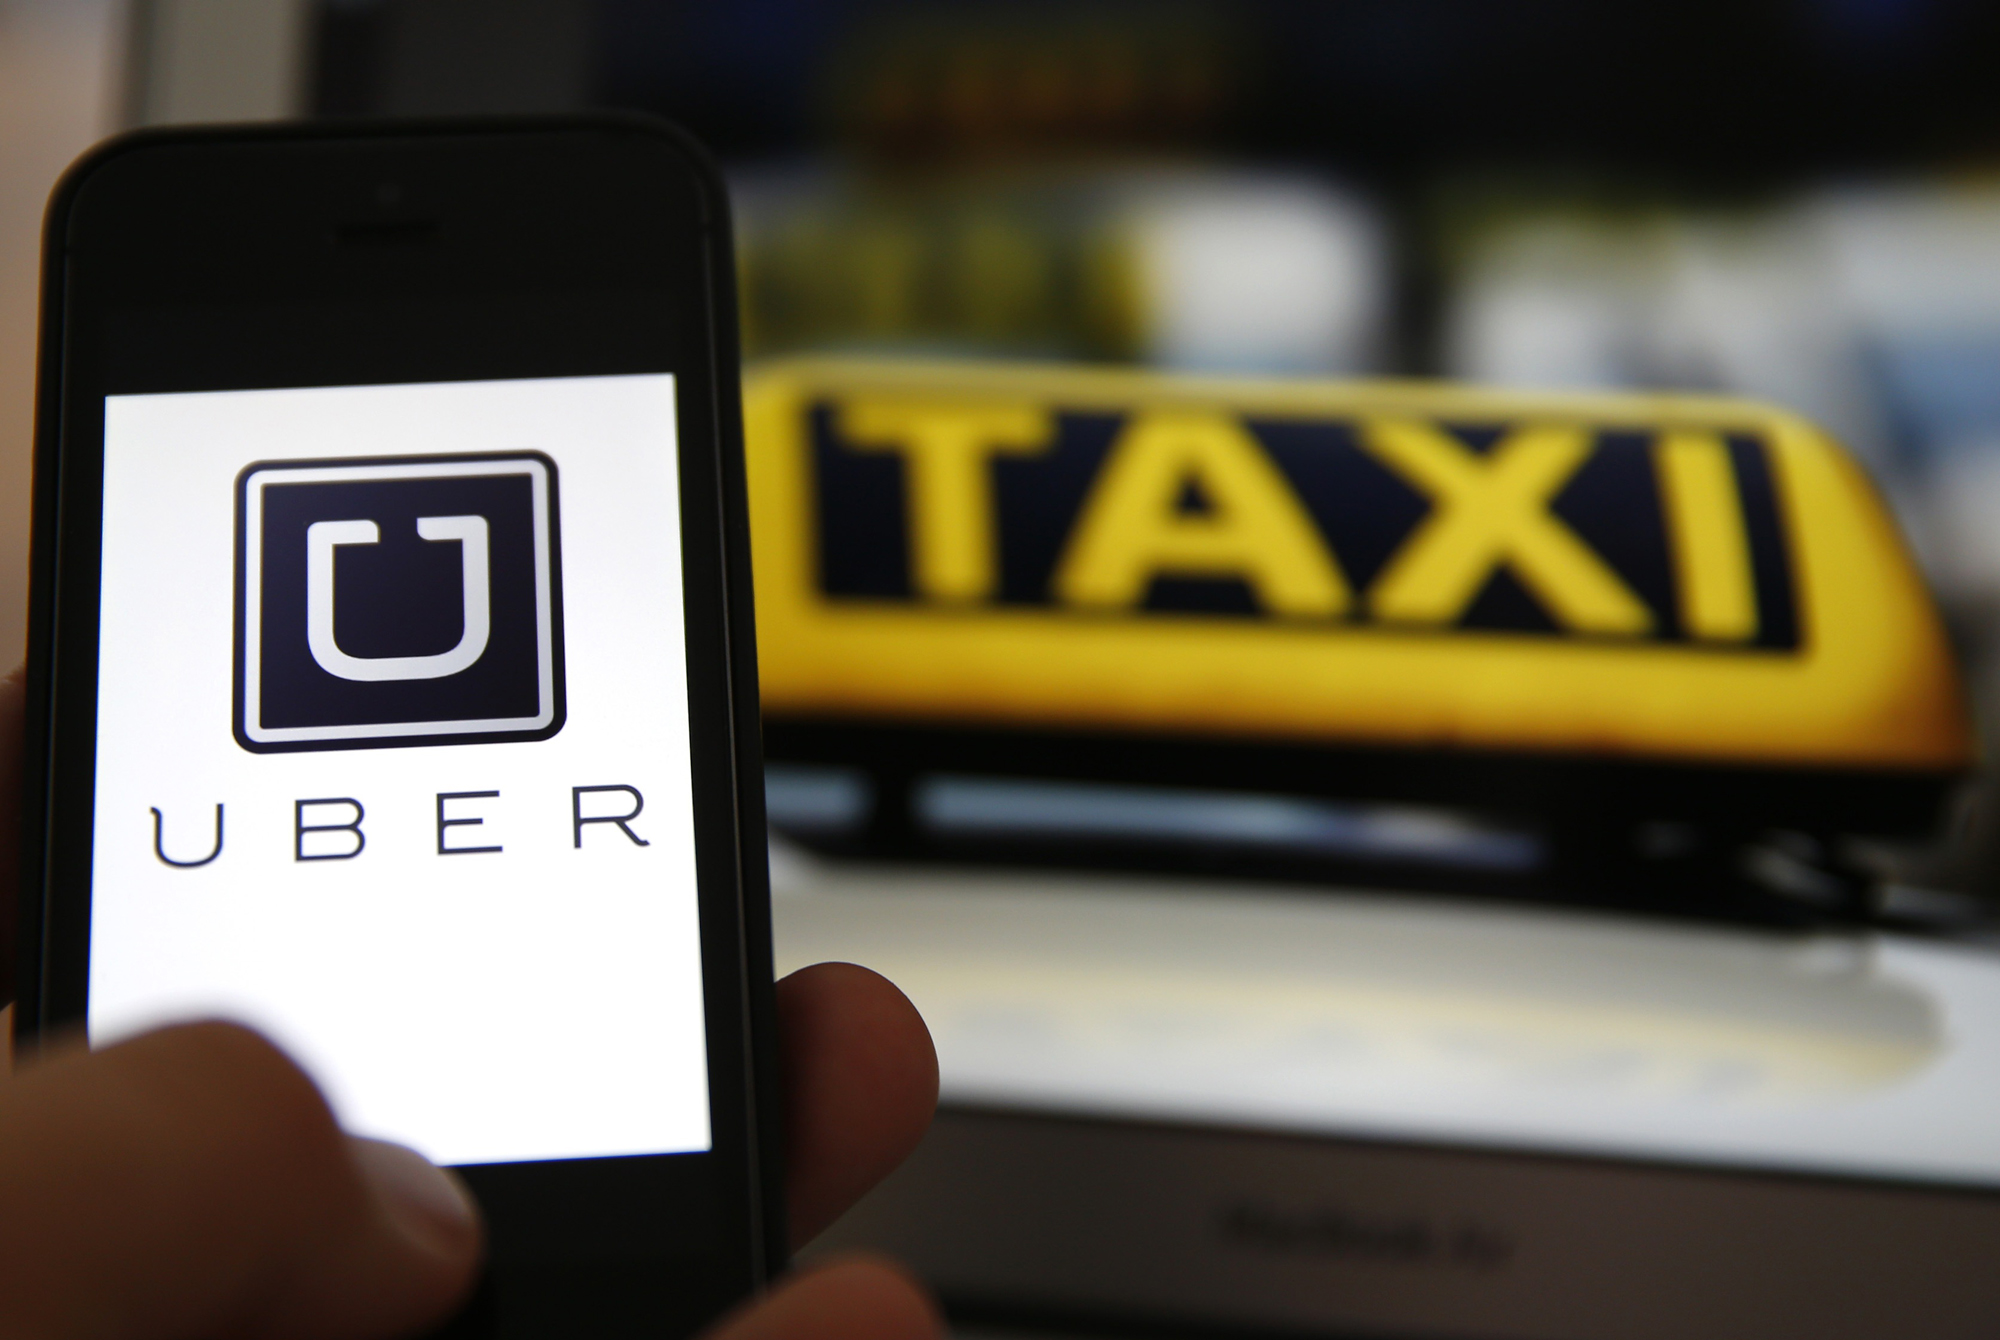 The entrance of Uber into the African market and its implications